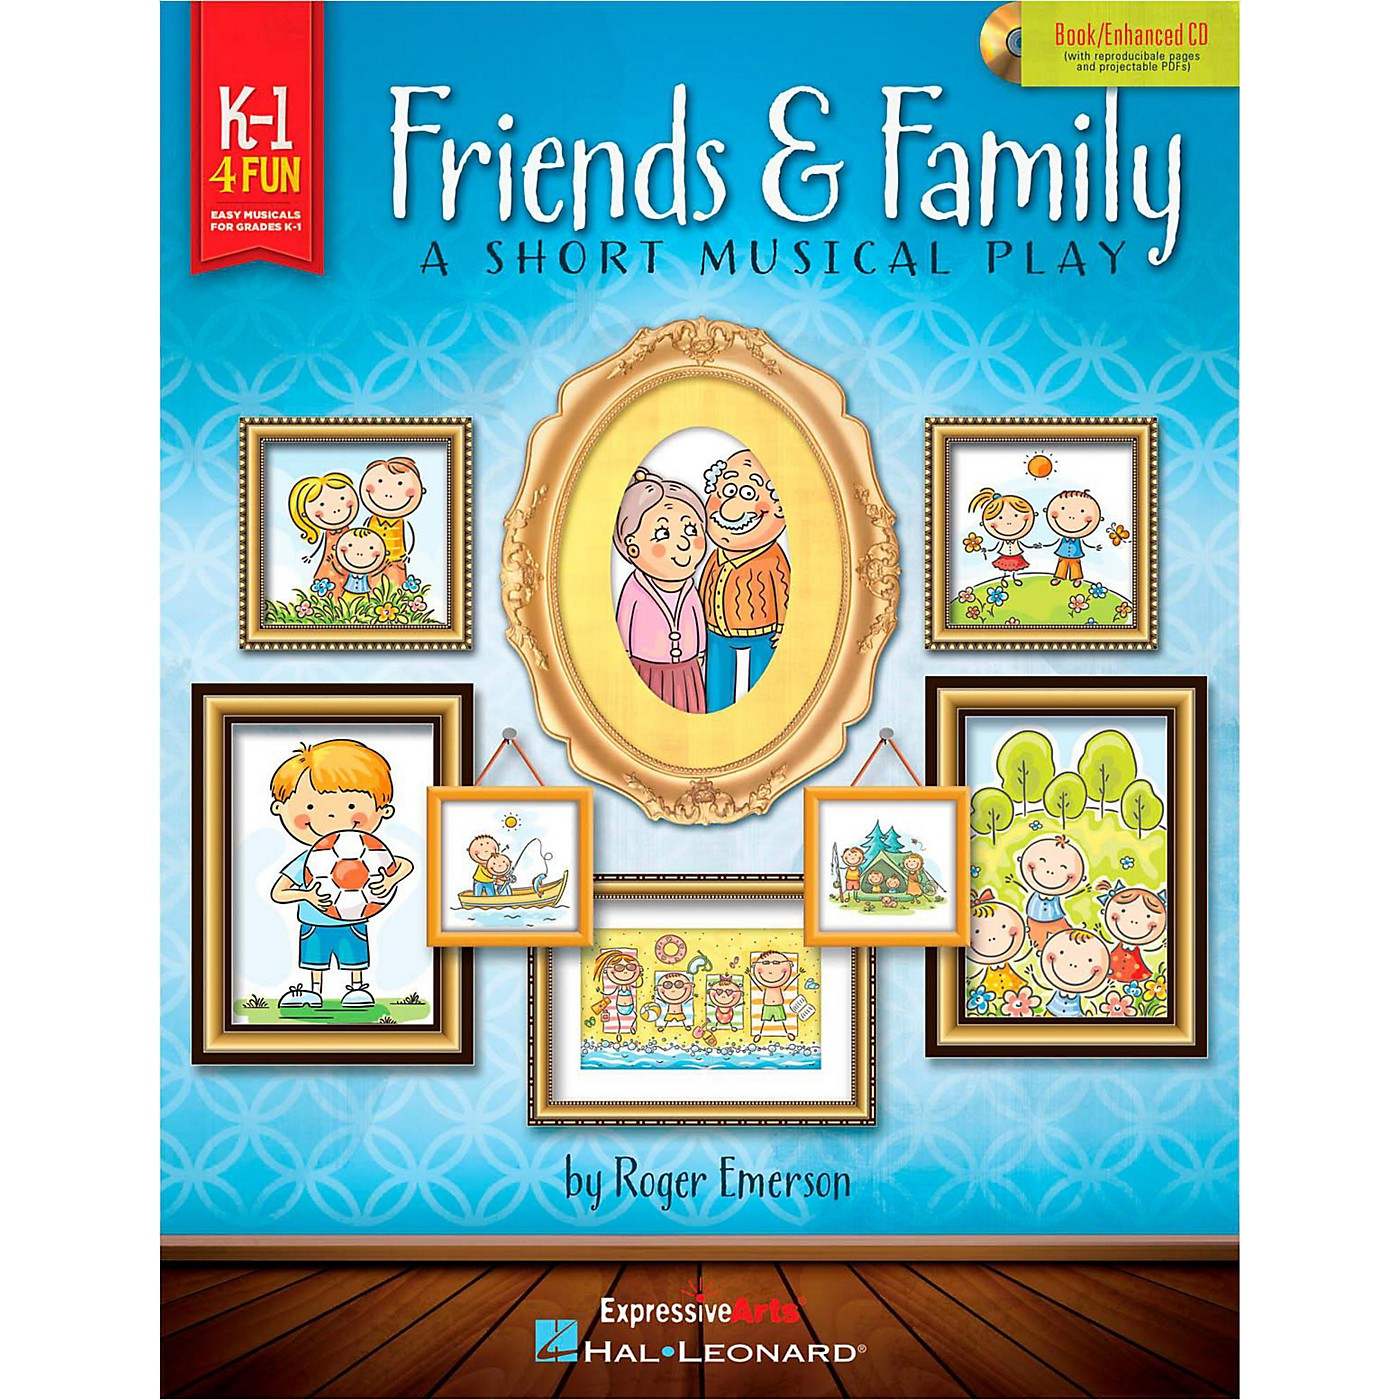 Hal Leonard Friends & Family - A Short Musical Play for Very Young Voices Book/Enhanced CD thumbnail